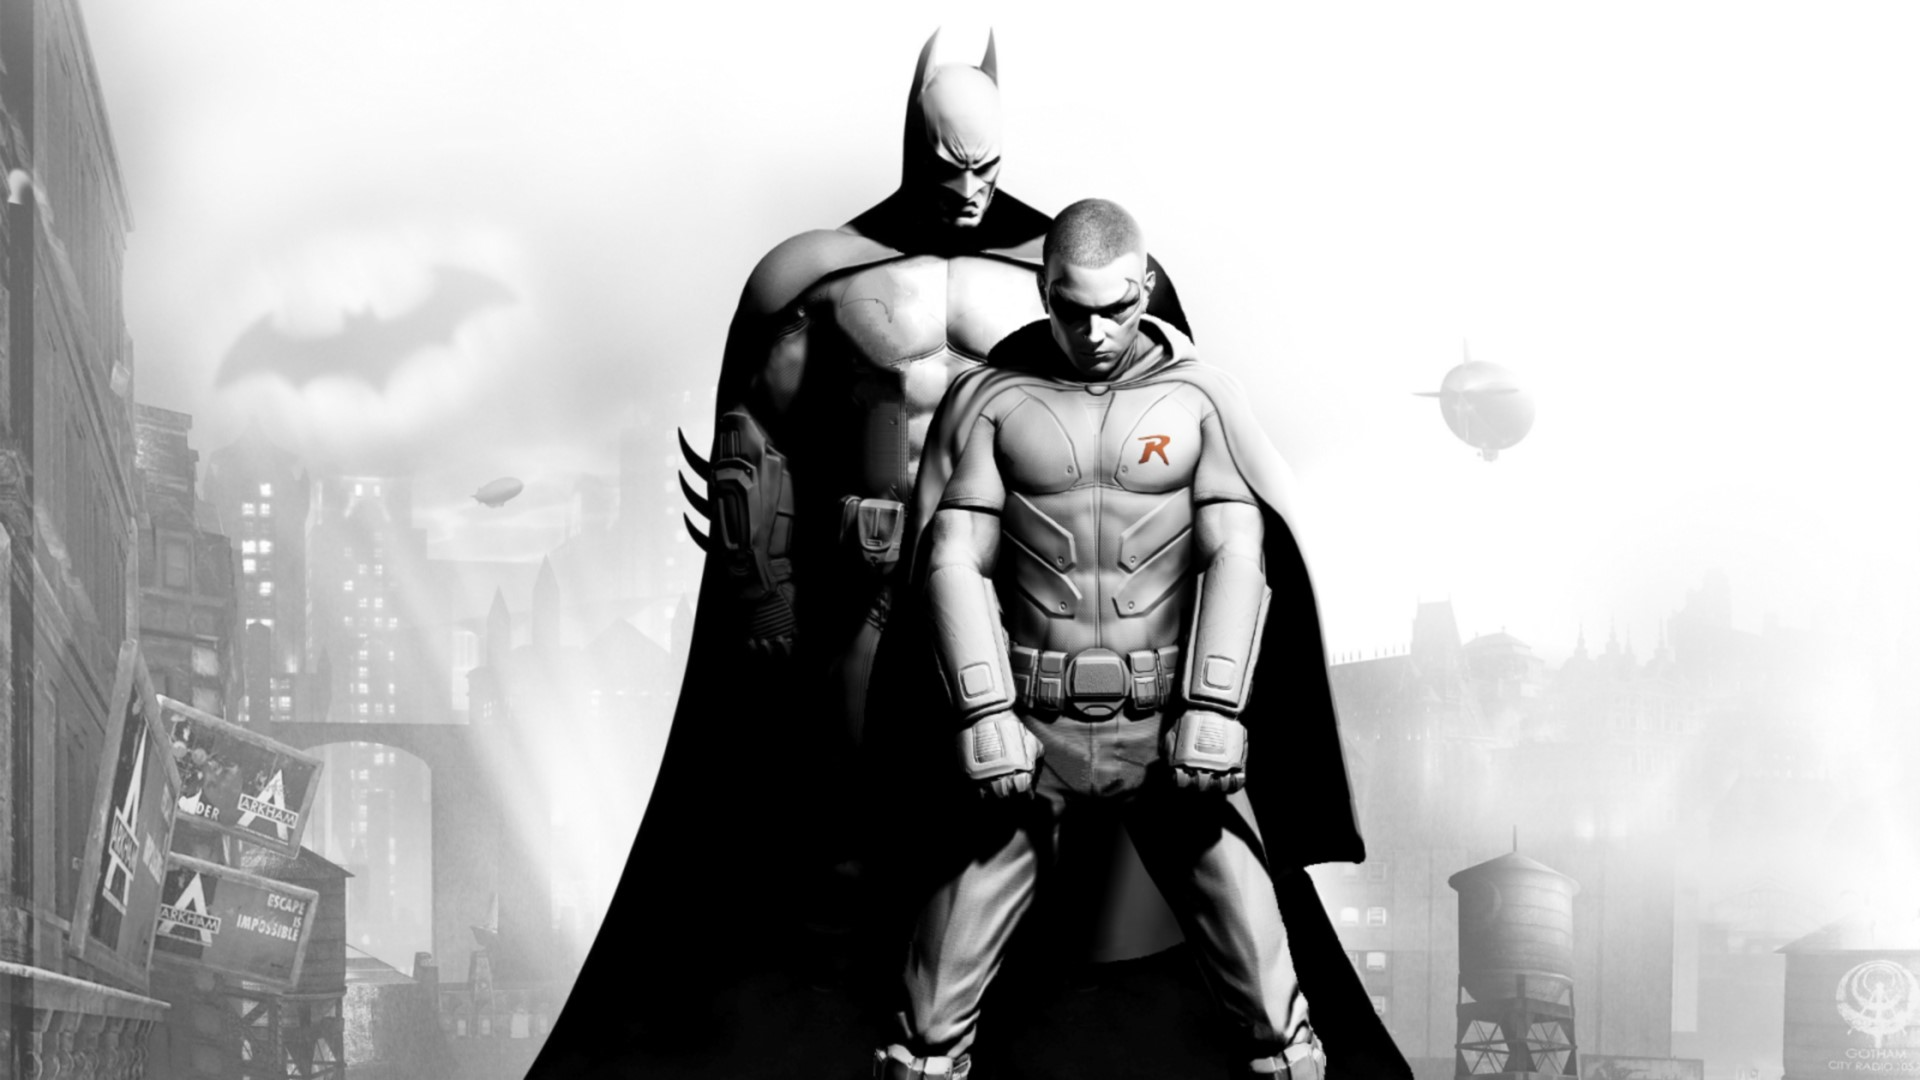 batman arkham city robin wallpaper i3 Art Of Wallpapers 1920x1080